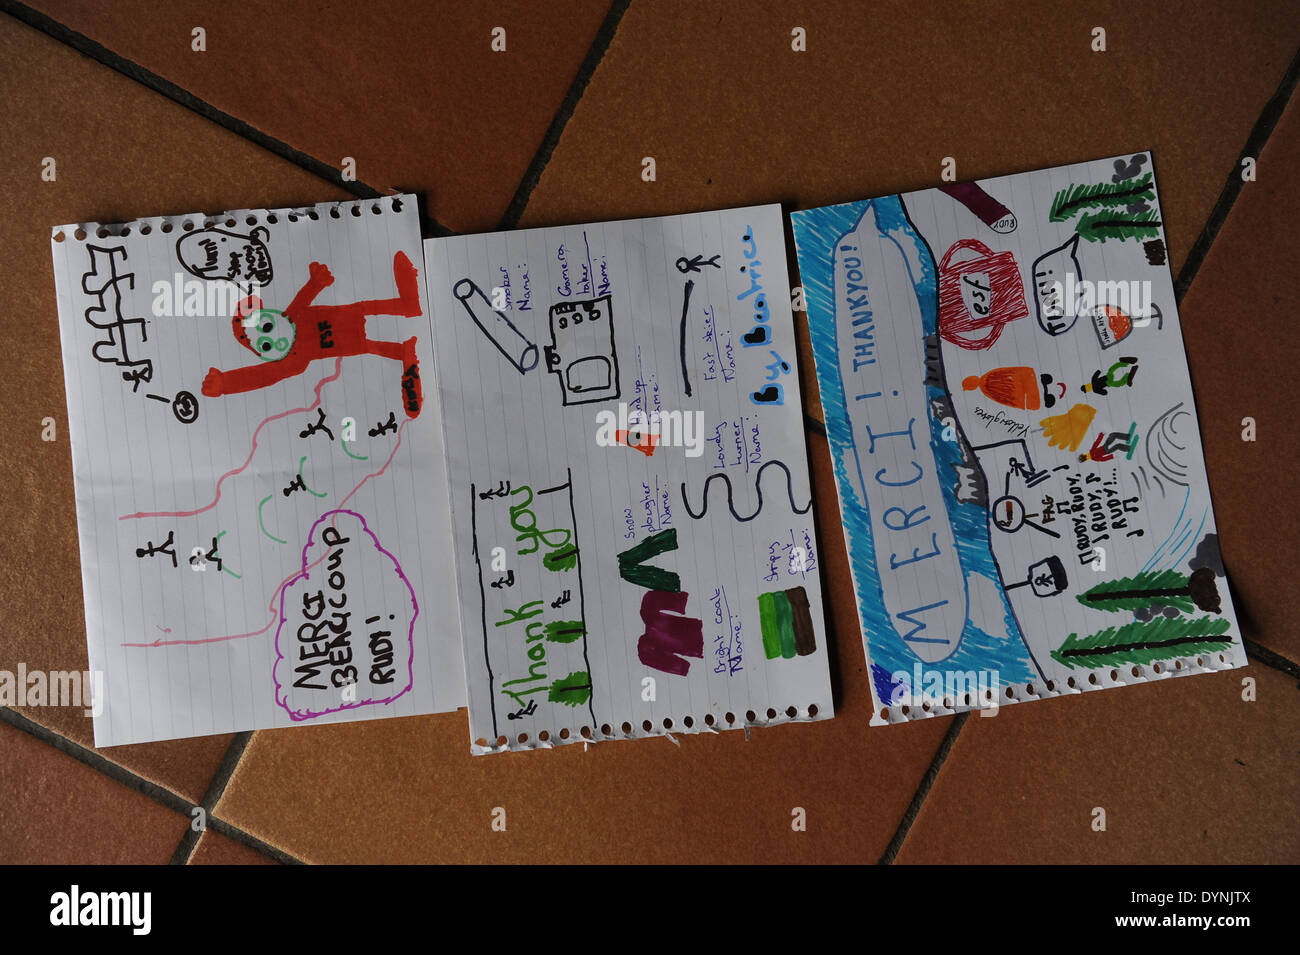 thank you letters written to a skiing instructor by english children - Stock Image